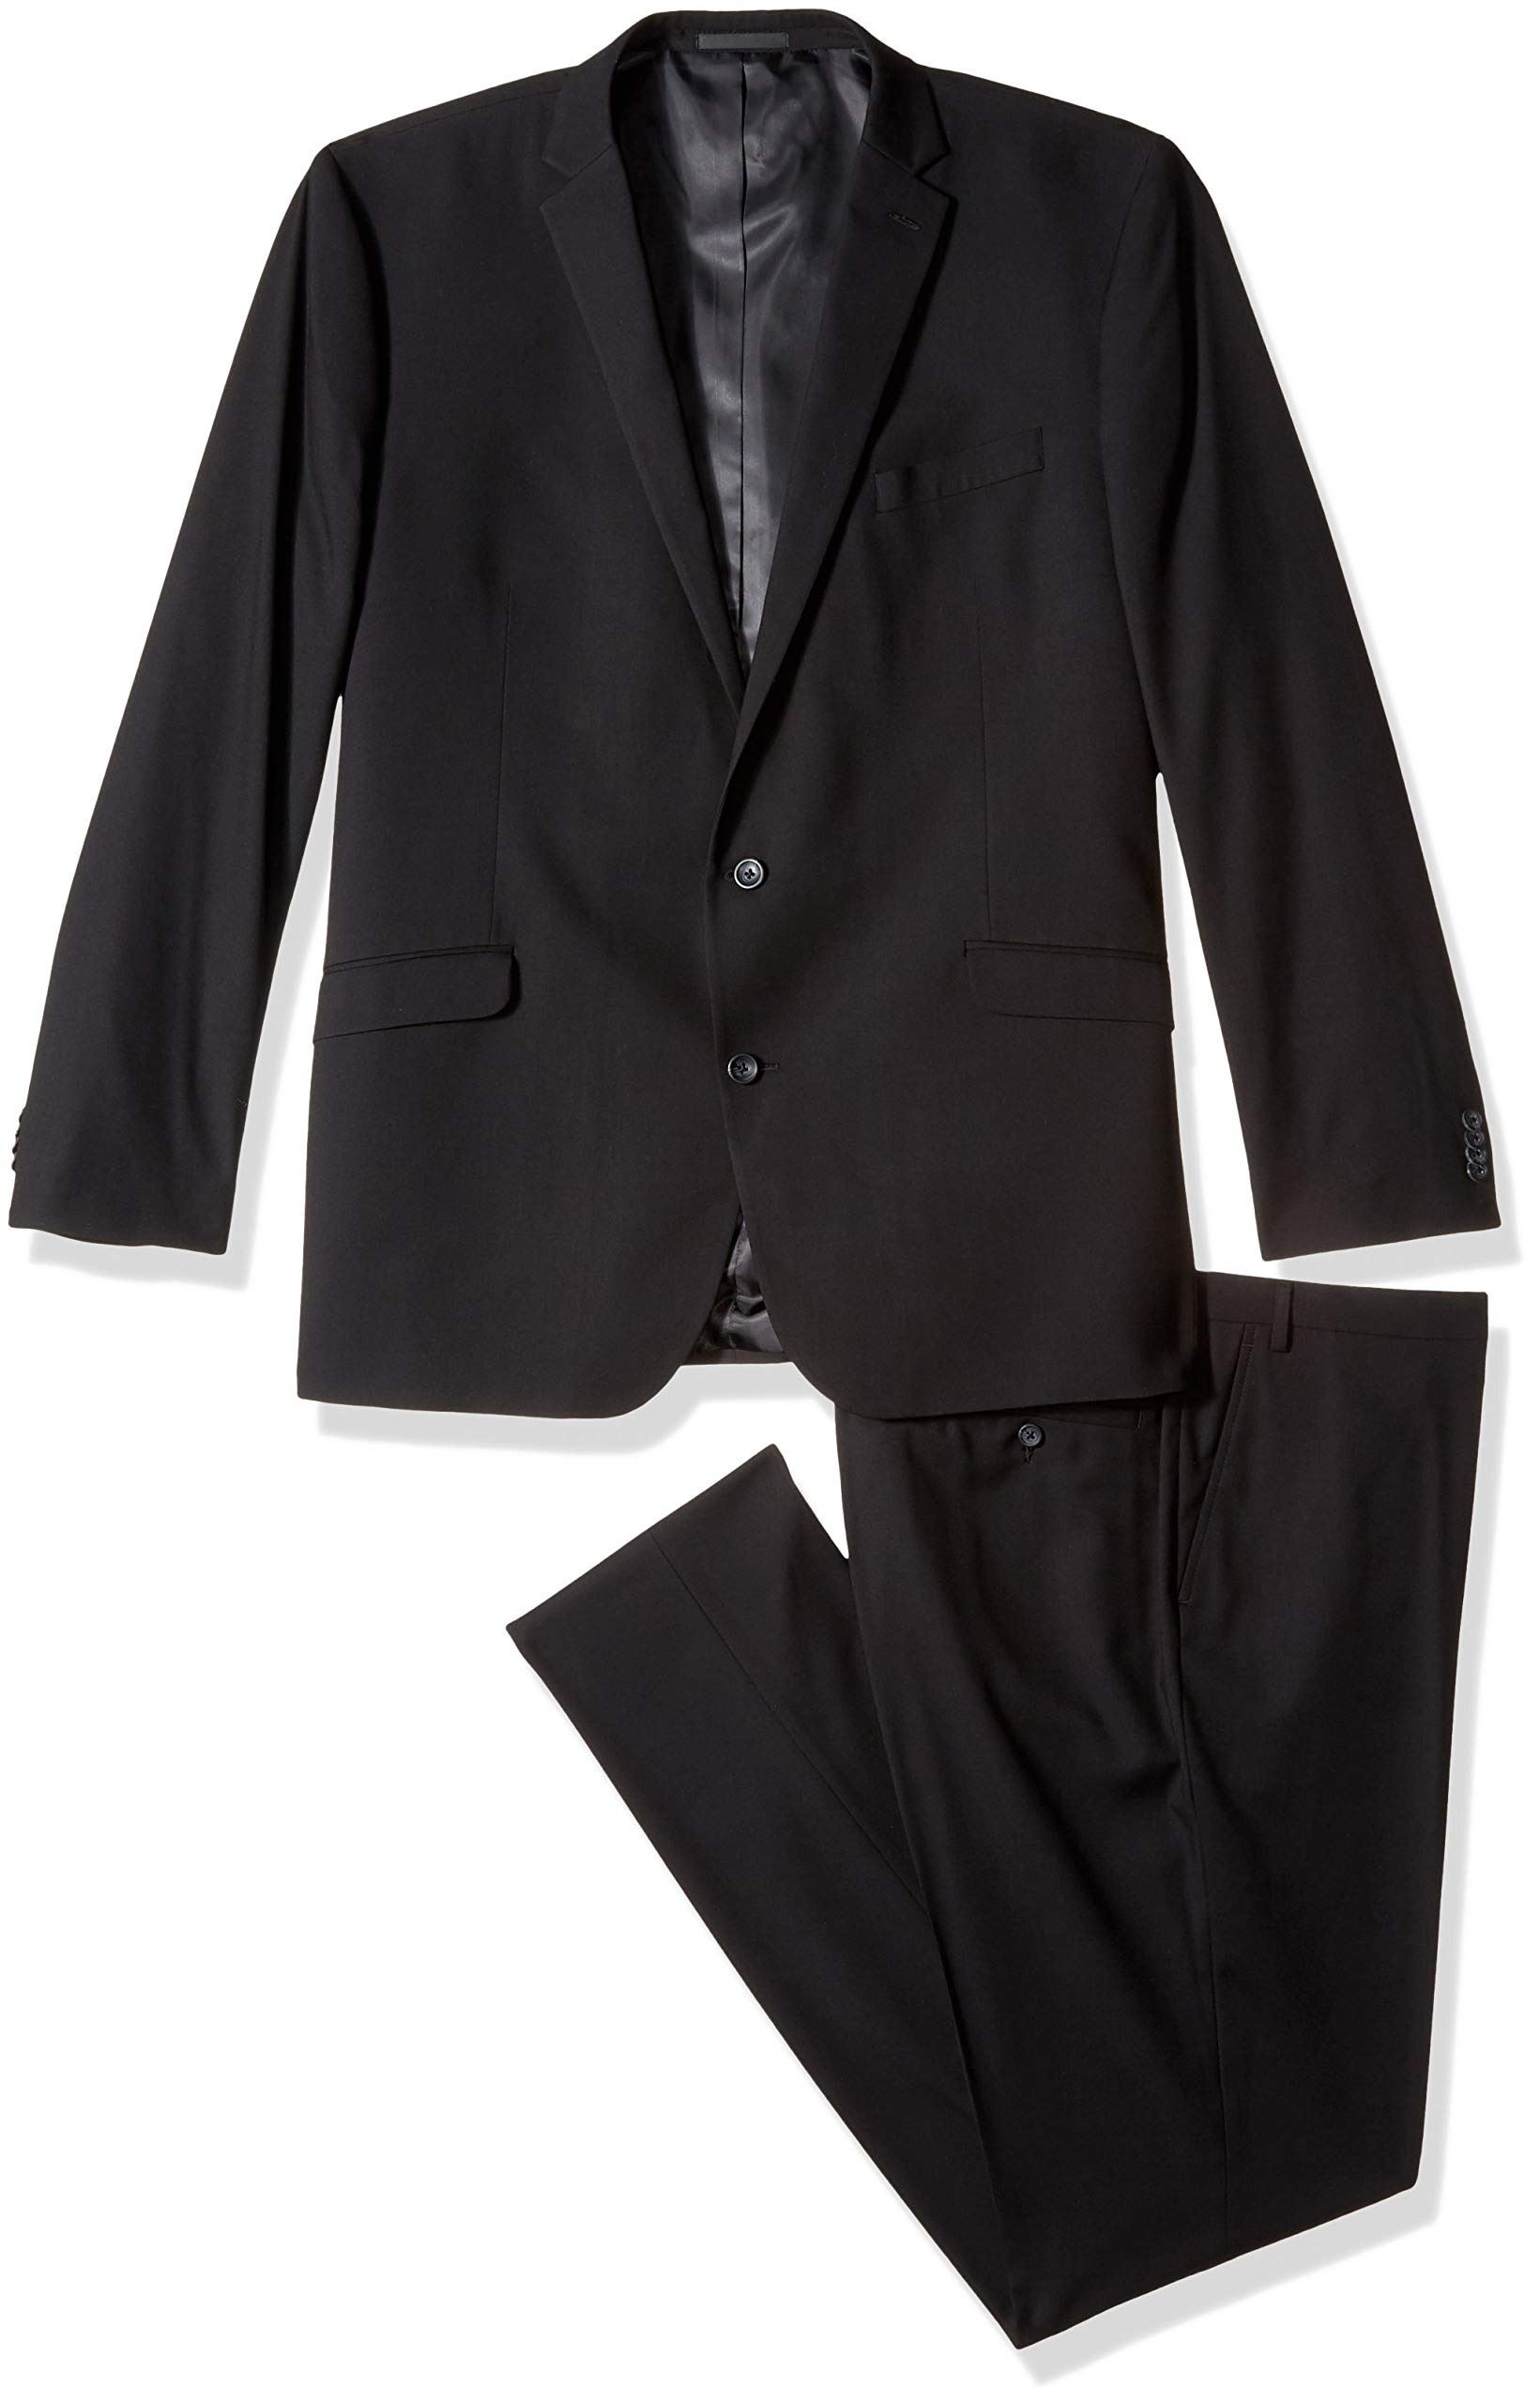 Kenneth Cole REACTION Men's Big and Tall Big & Tall Performance Stretch Suit, Black, 60 Long